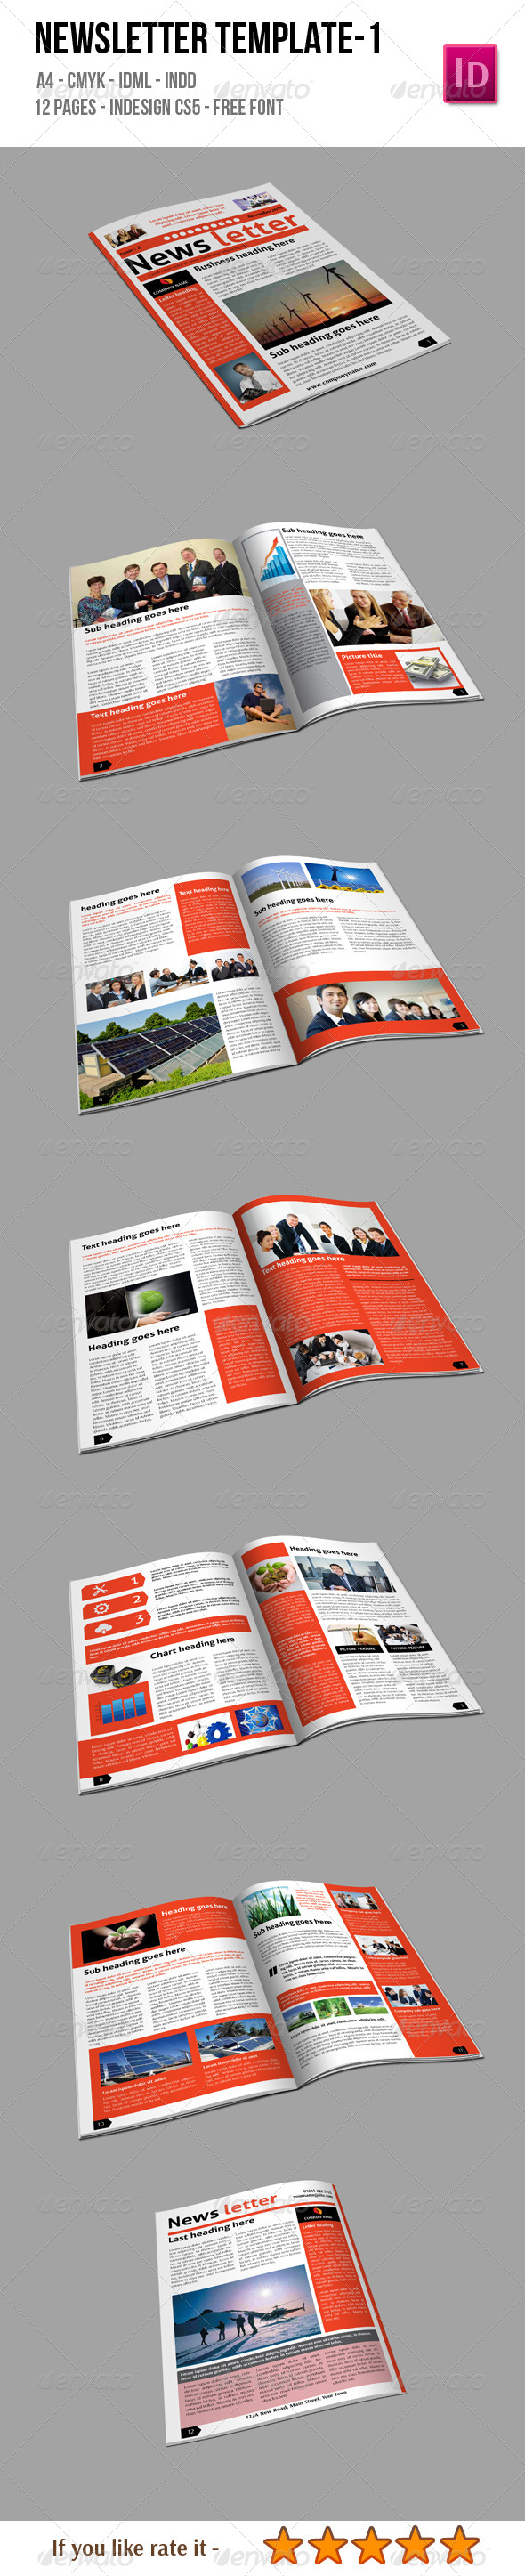 Newsletter Template 1 - Newsletters Print Templates